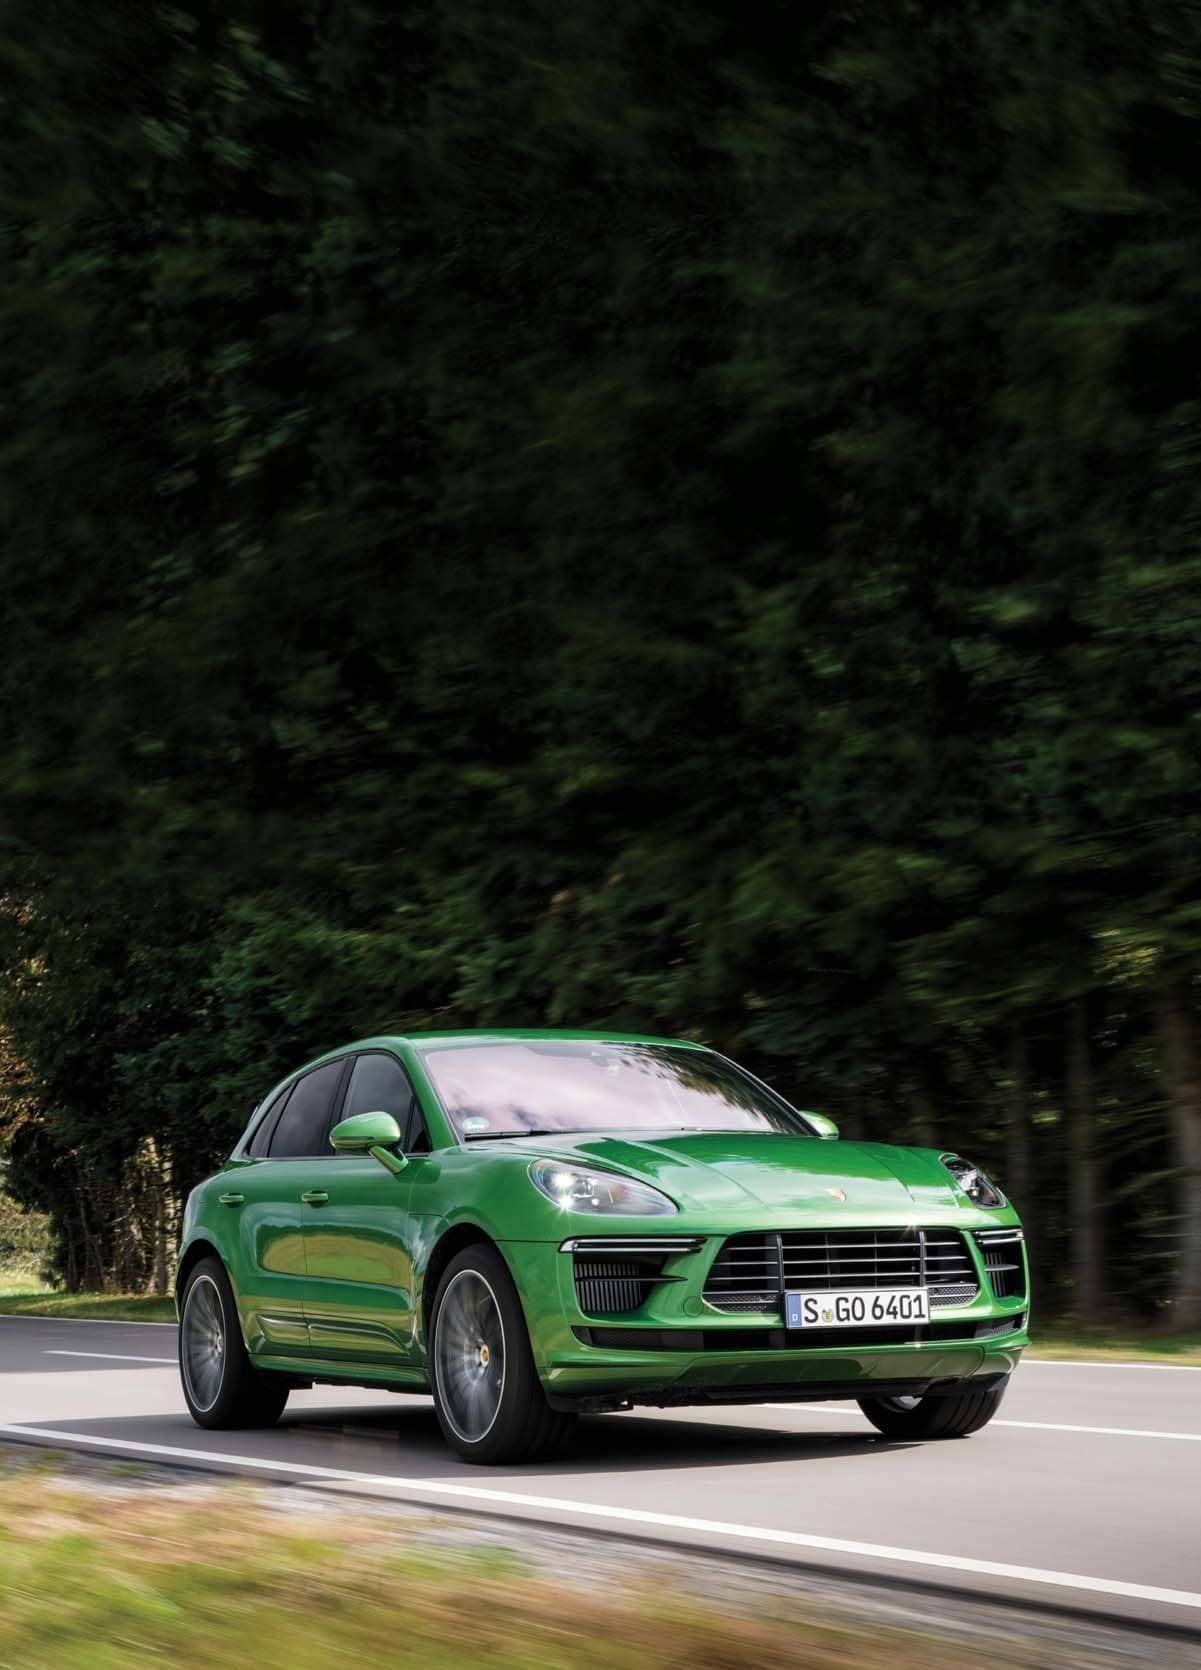 Porsche's Turbo Suv Gets More Boost And A Hefty Price Bump